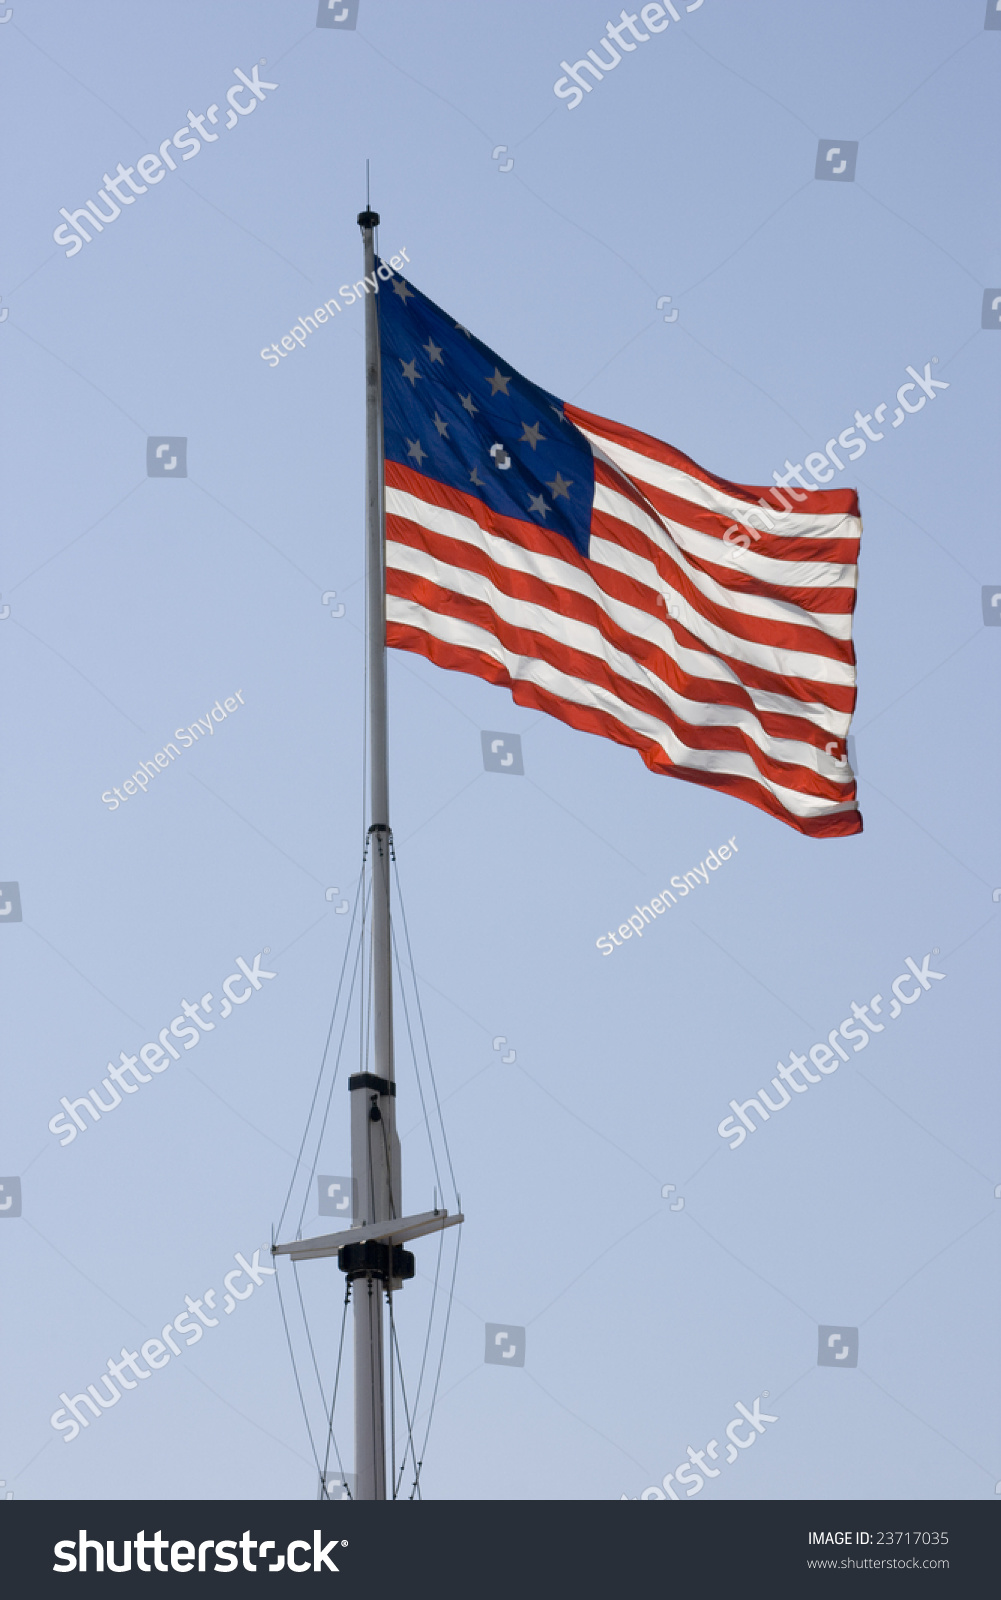 Old glory on flag pole above stock photo 23717035 shutterstock old glory on a flag pole above ft mc henry in baltimore maryland sciox Image collections